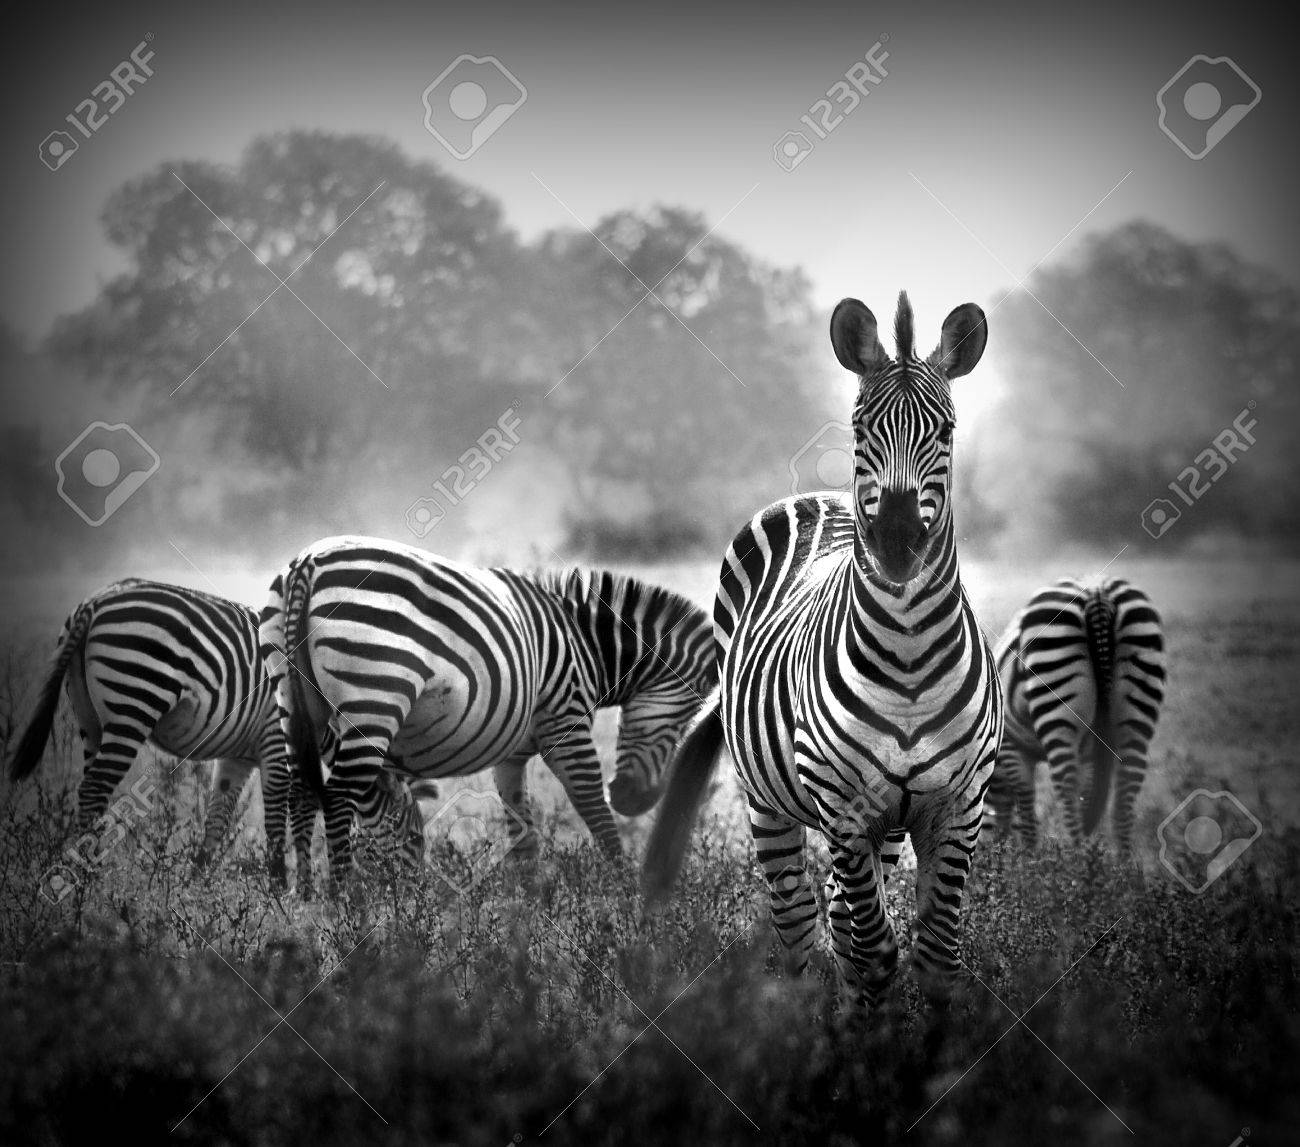 Artistic black and white image of a male zebra with the herd in the background stock